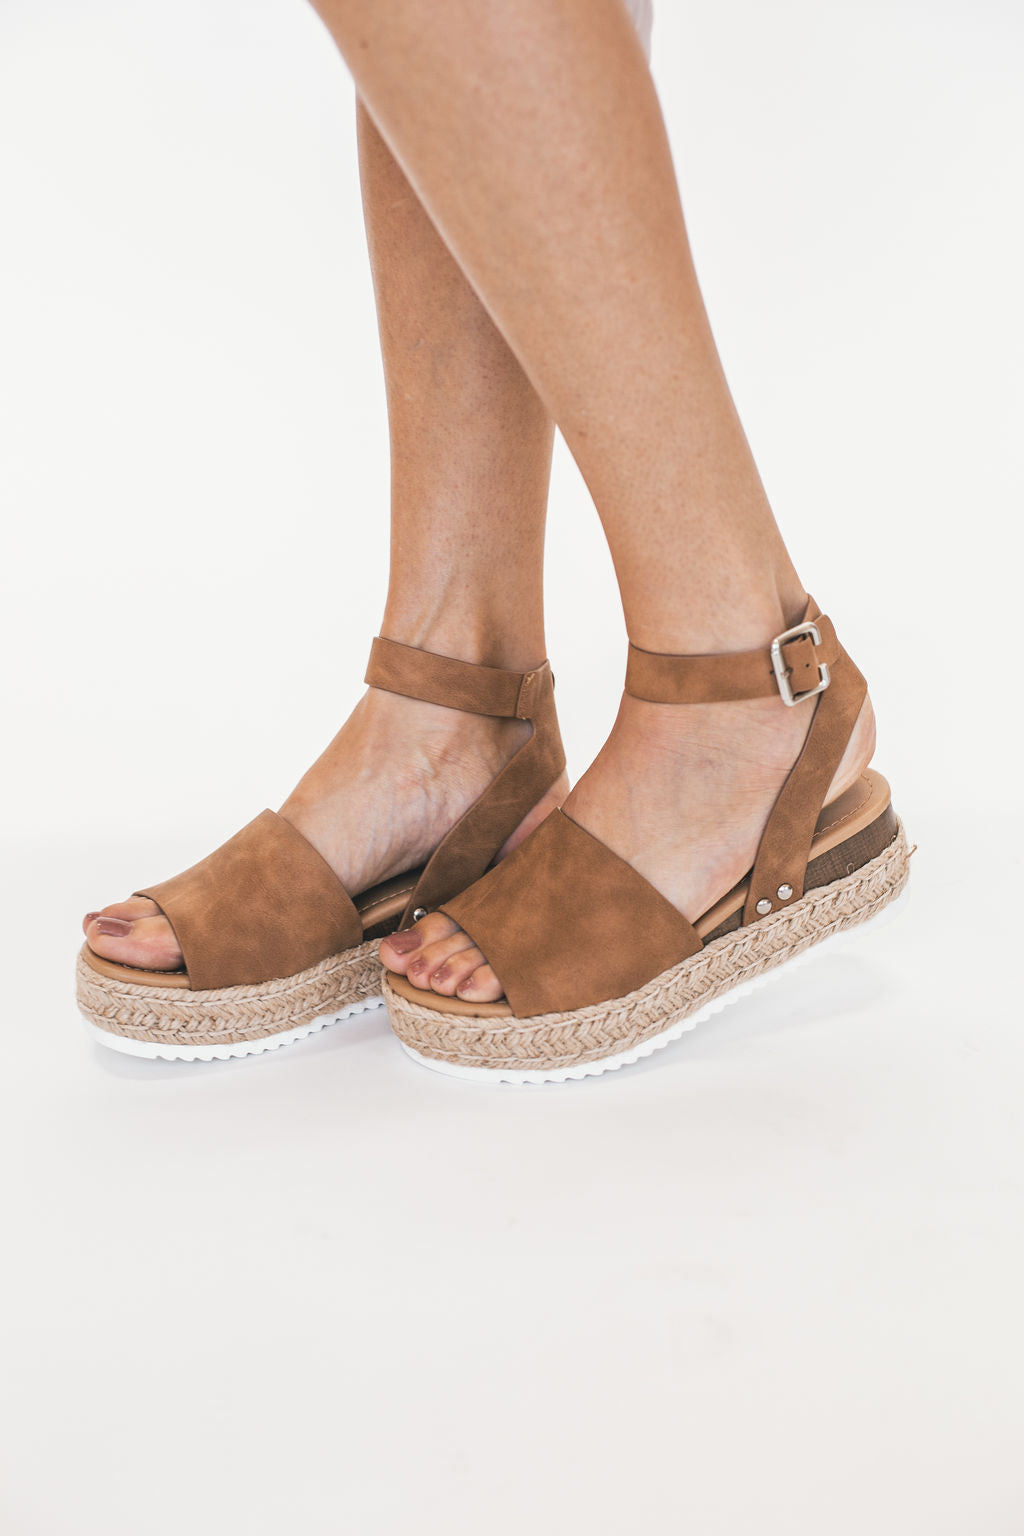 THE CARRIE ESPADRILLE SANDALS IN TAN